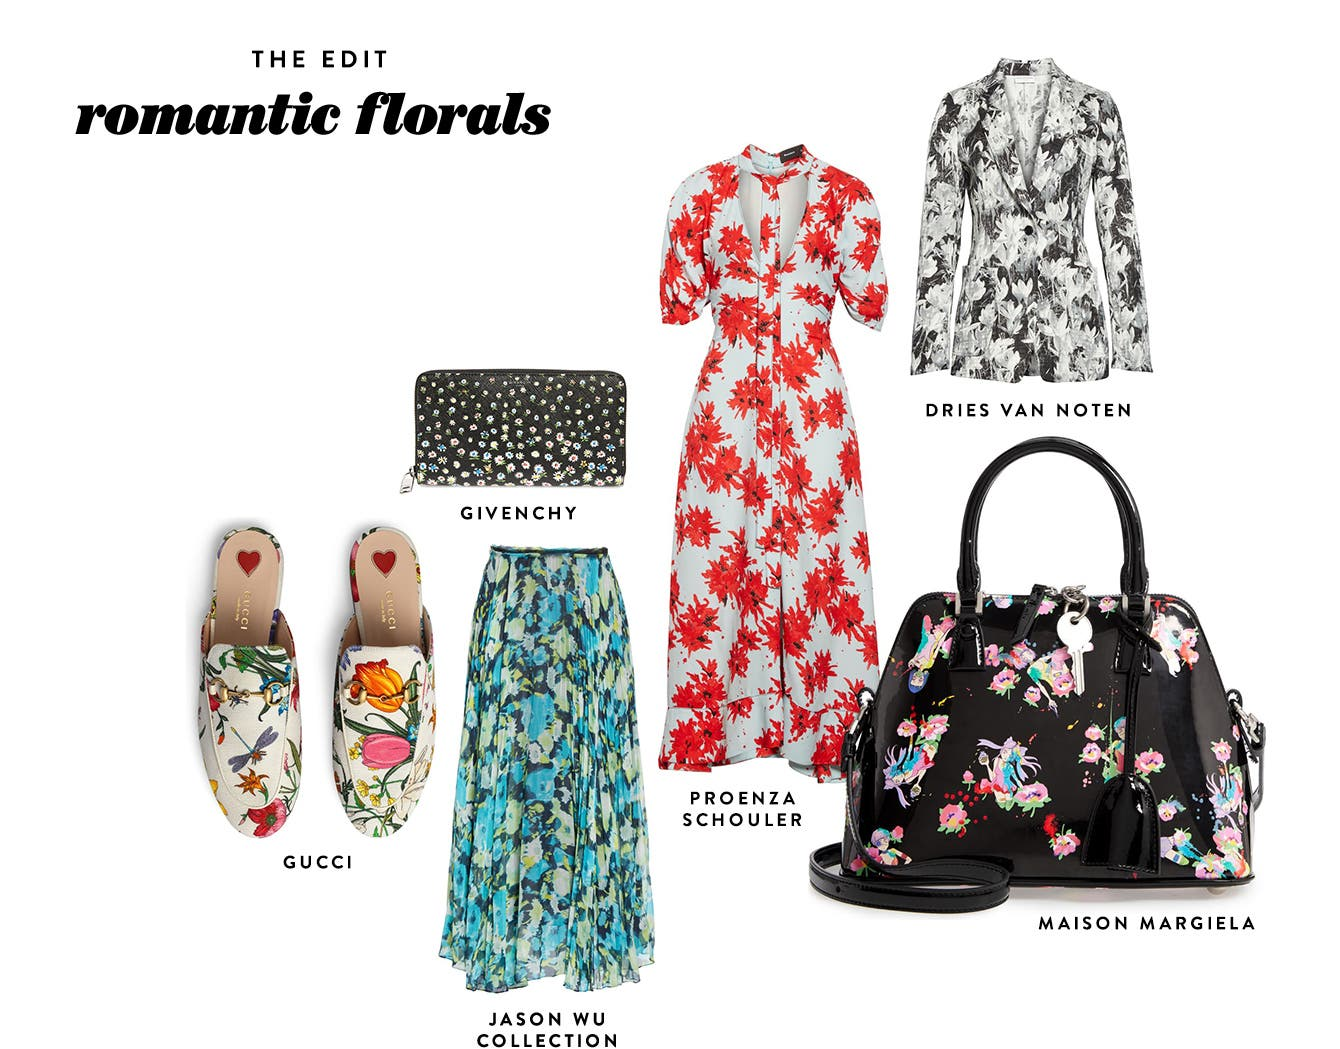 The edit: romantic florals.